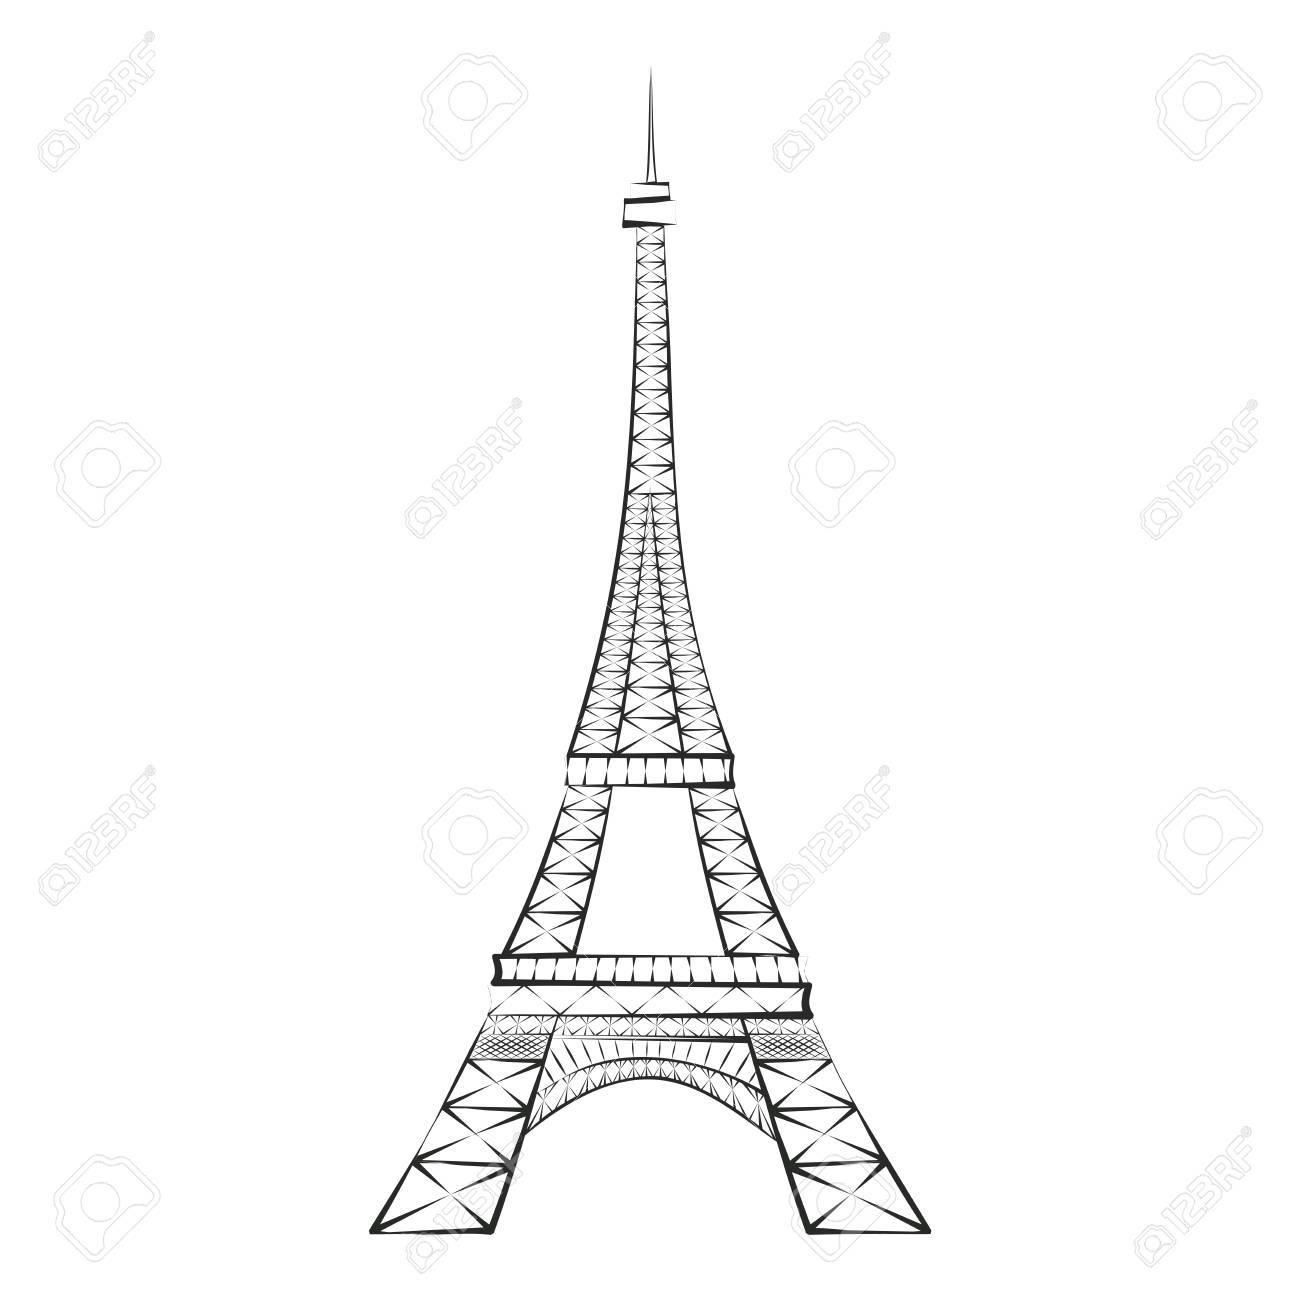 Black Silhouette Eiffel Tower Paris Isolated On White Background Royalty Free Cliparts Vectors And Stock Illustration Image 102330779